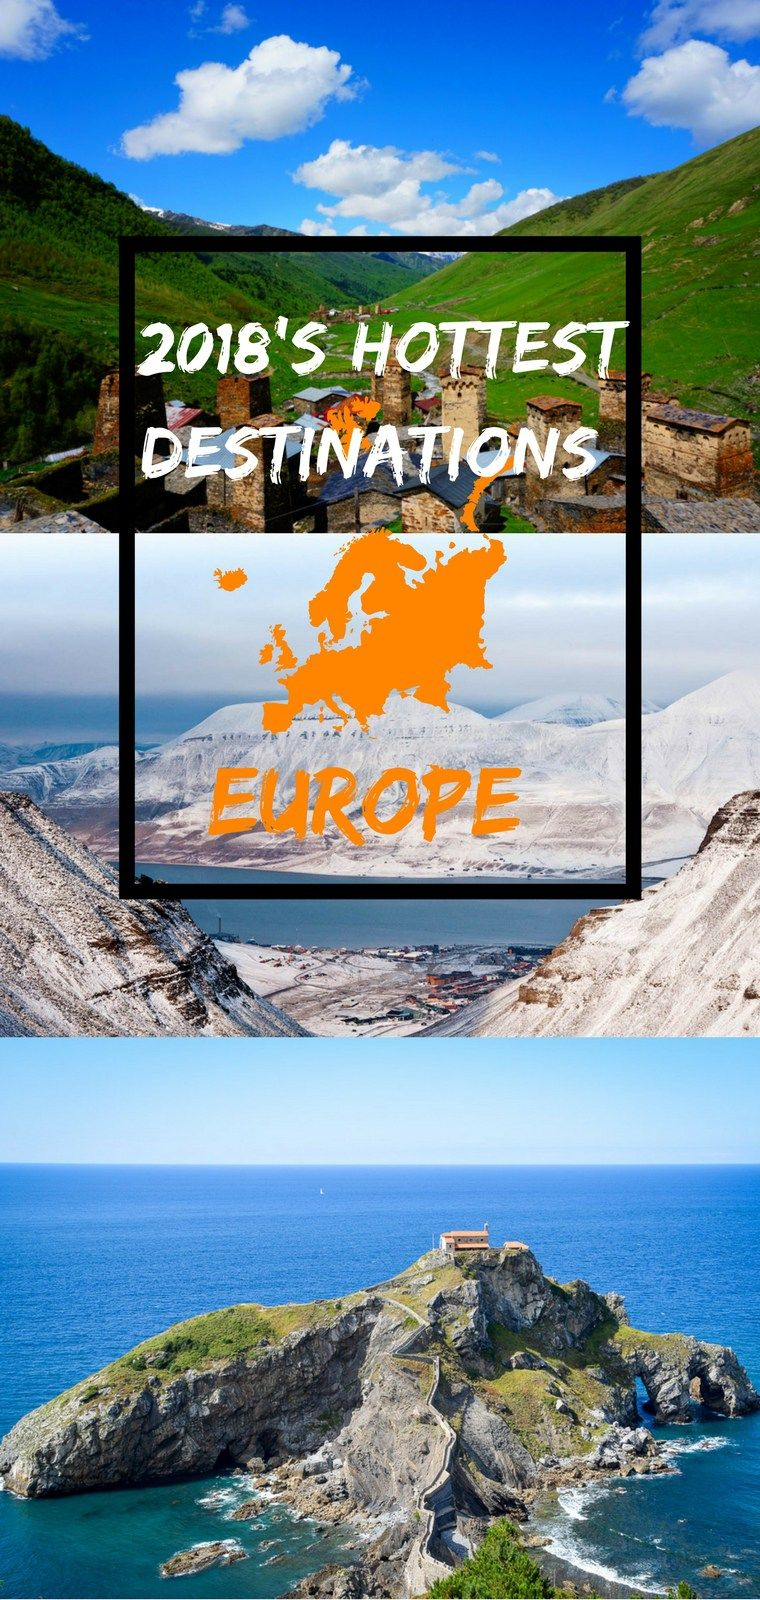 Rail Europe Travel Agent